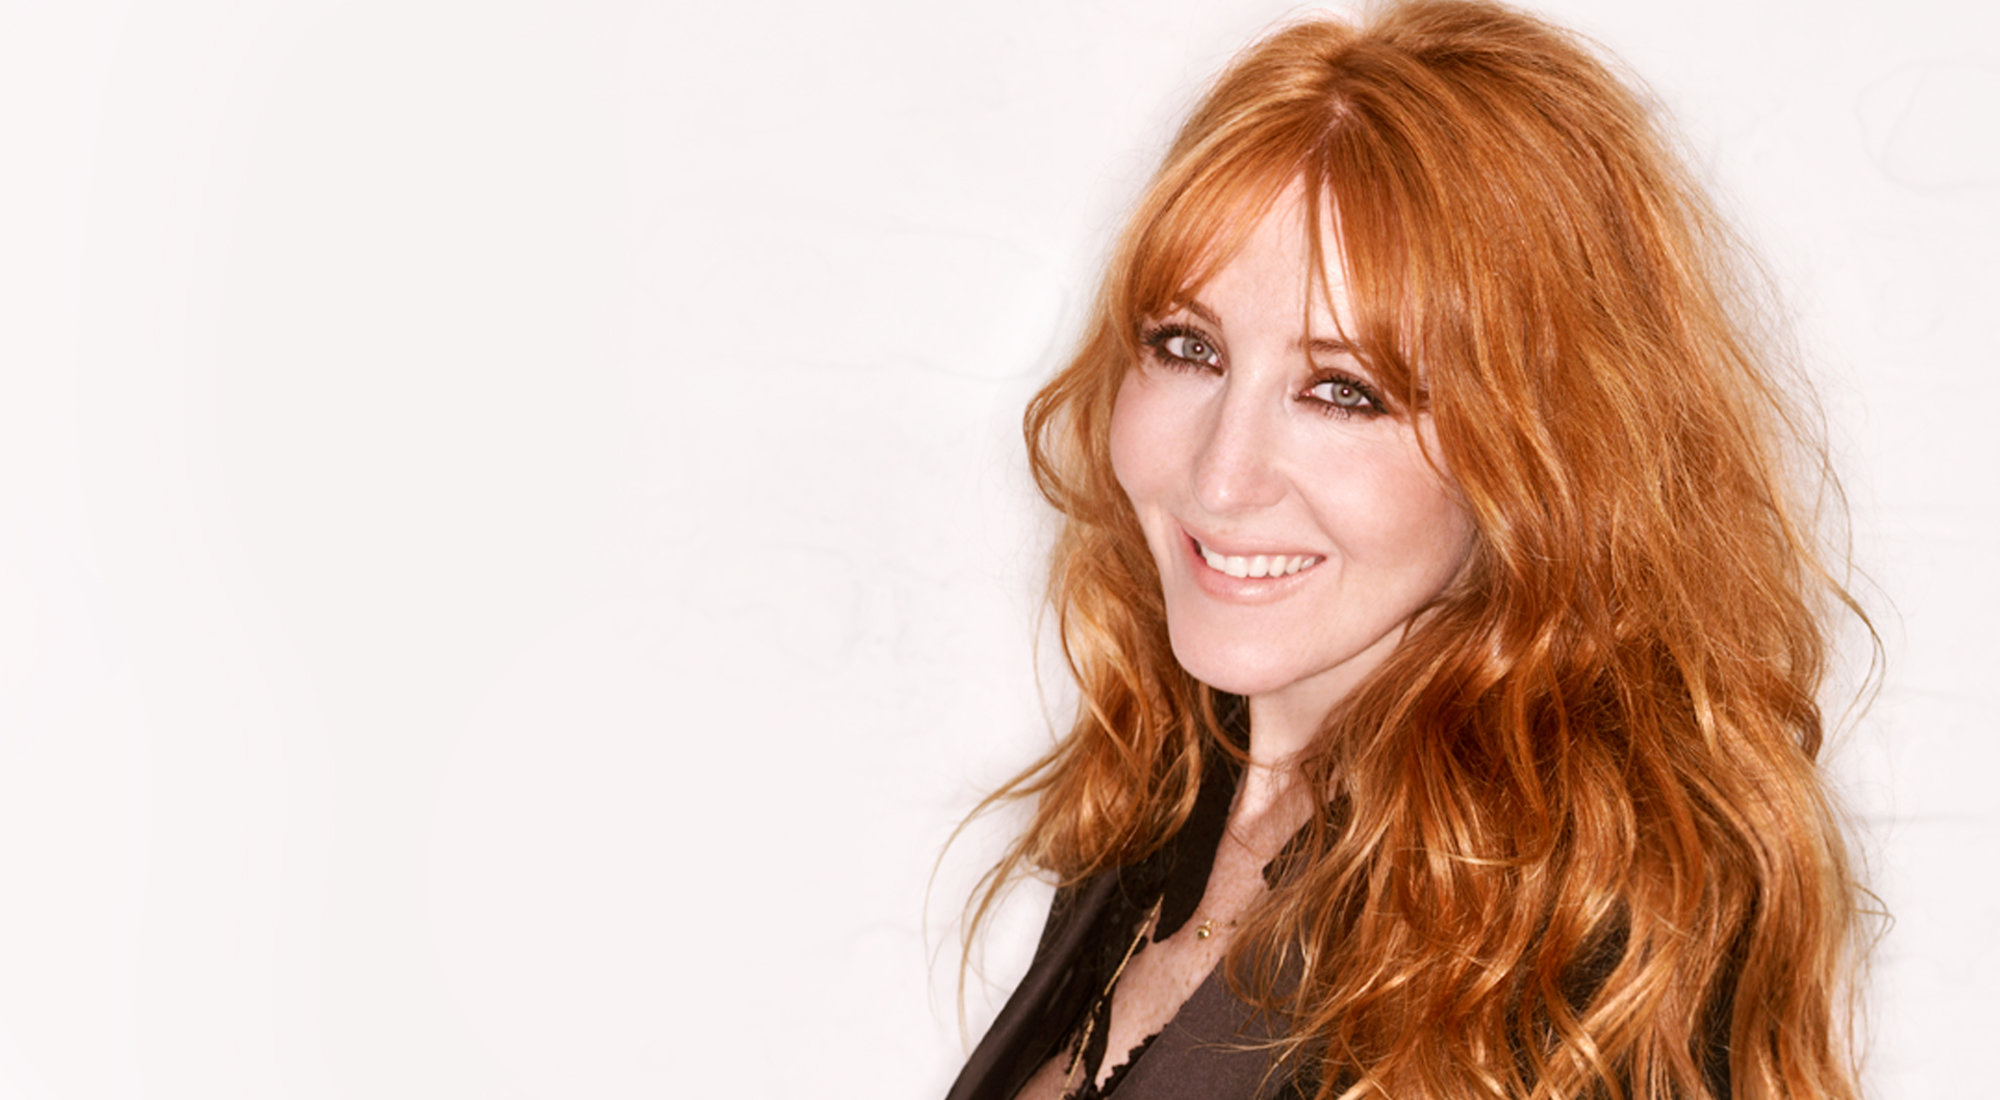 Charlotte Tilbury From World Class Makeup Artist To